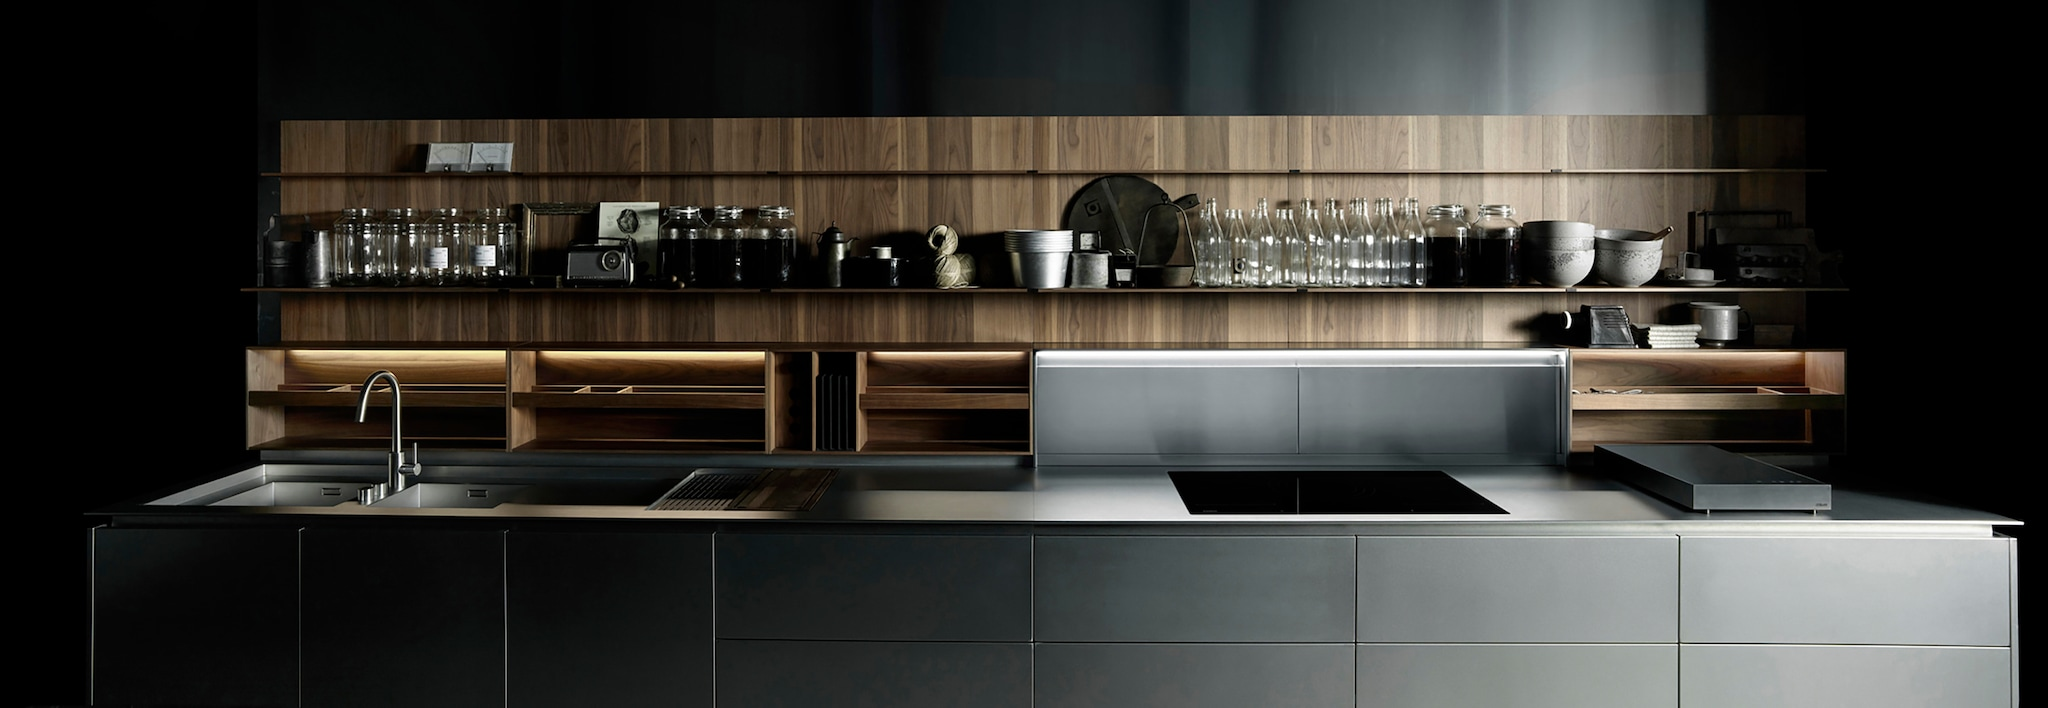 Awesome boffi cucine milano pictures home ideas for Cucine boffi catalogo 2014